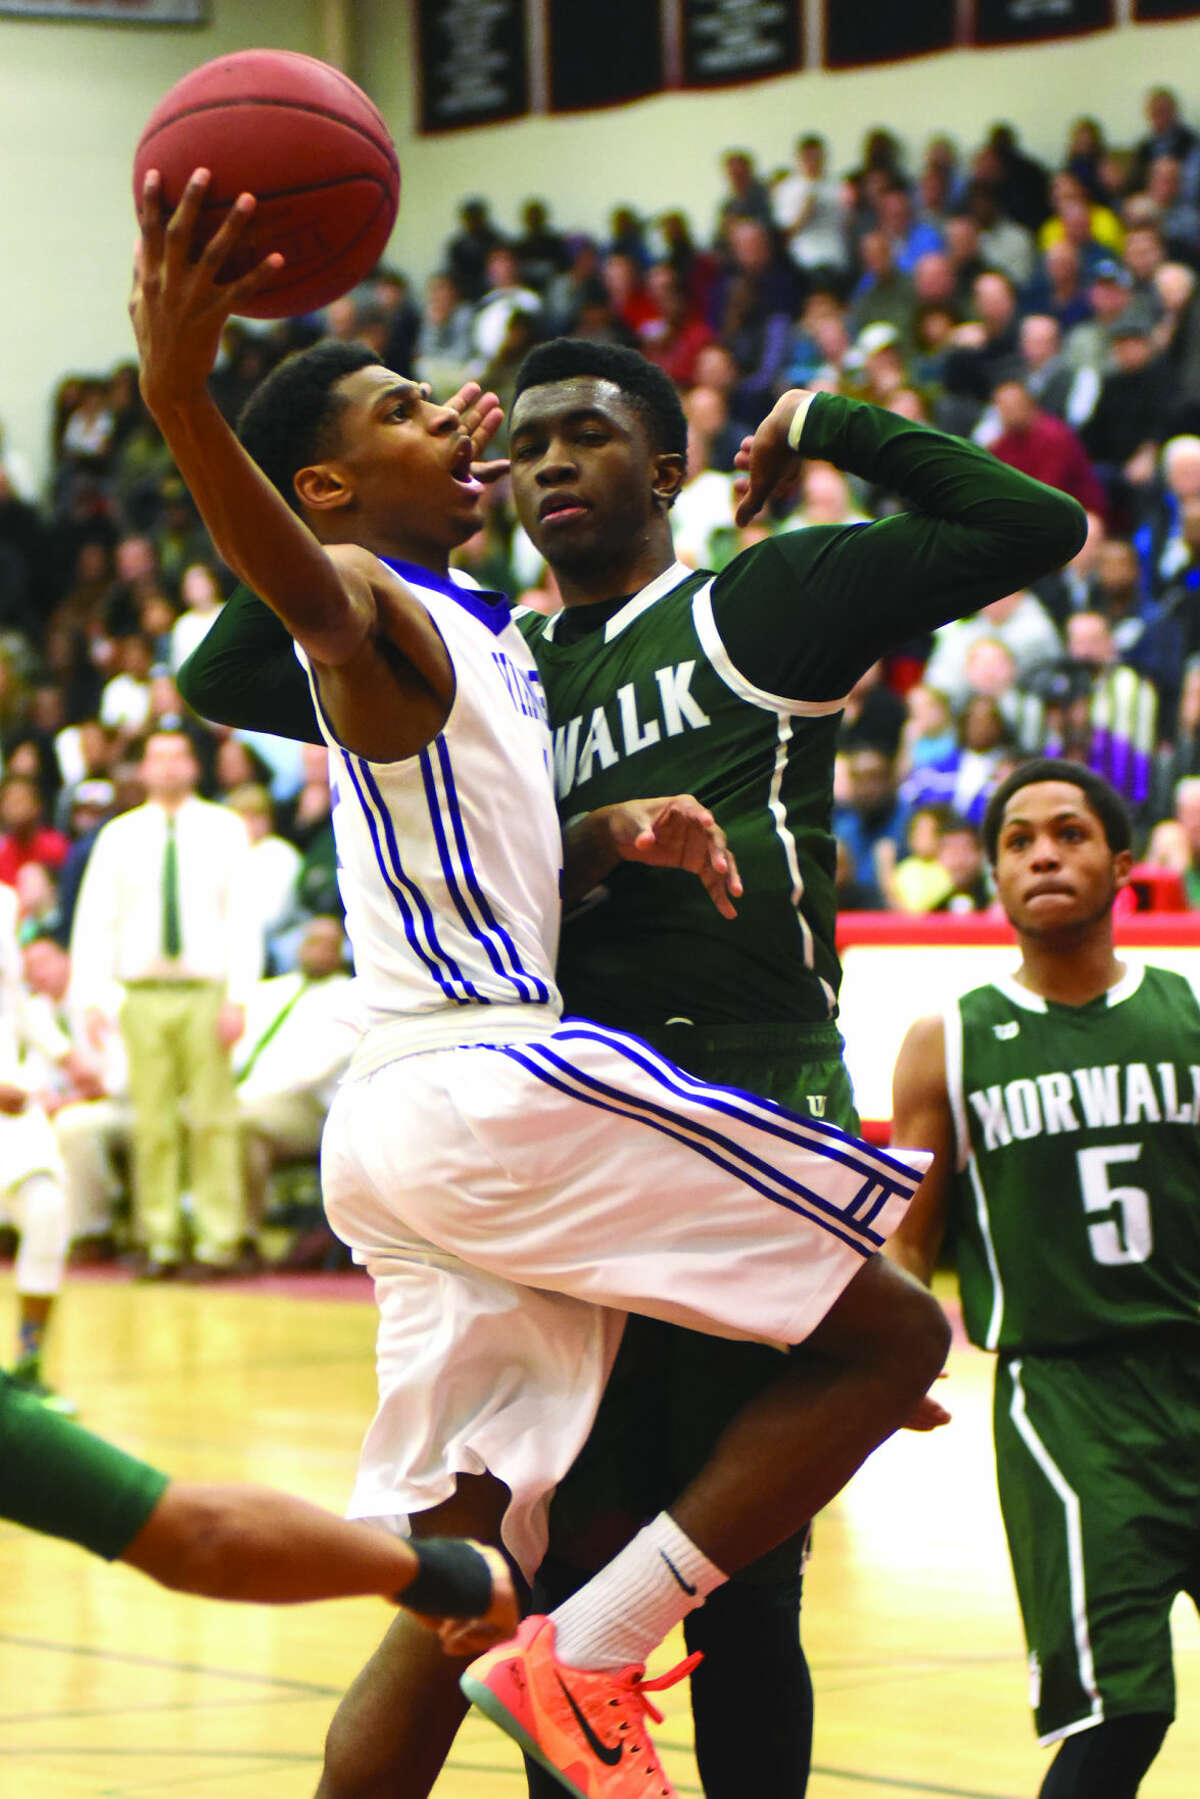 Westhill's Jeremiah Livingston goes up for a layup. Livingston scored a game high 40 points the Vikings' 64-60 win over Norwalk. (John Nash/Hour photo)